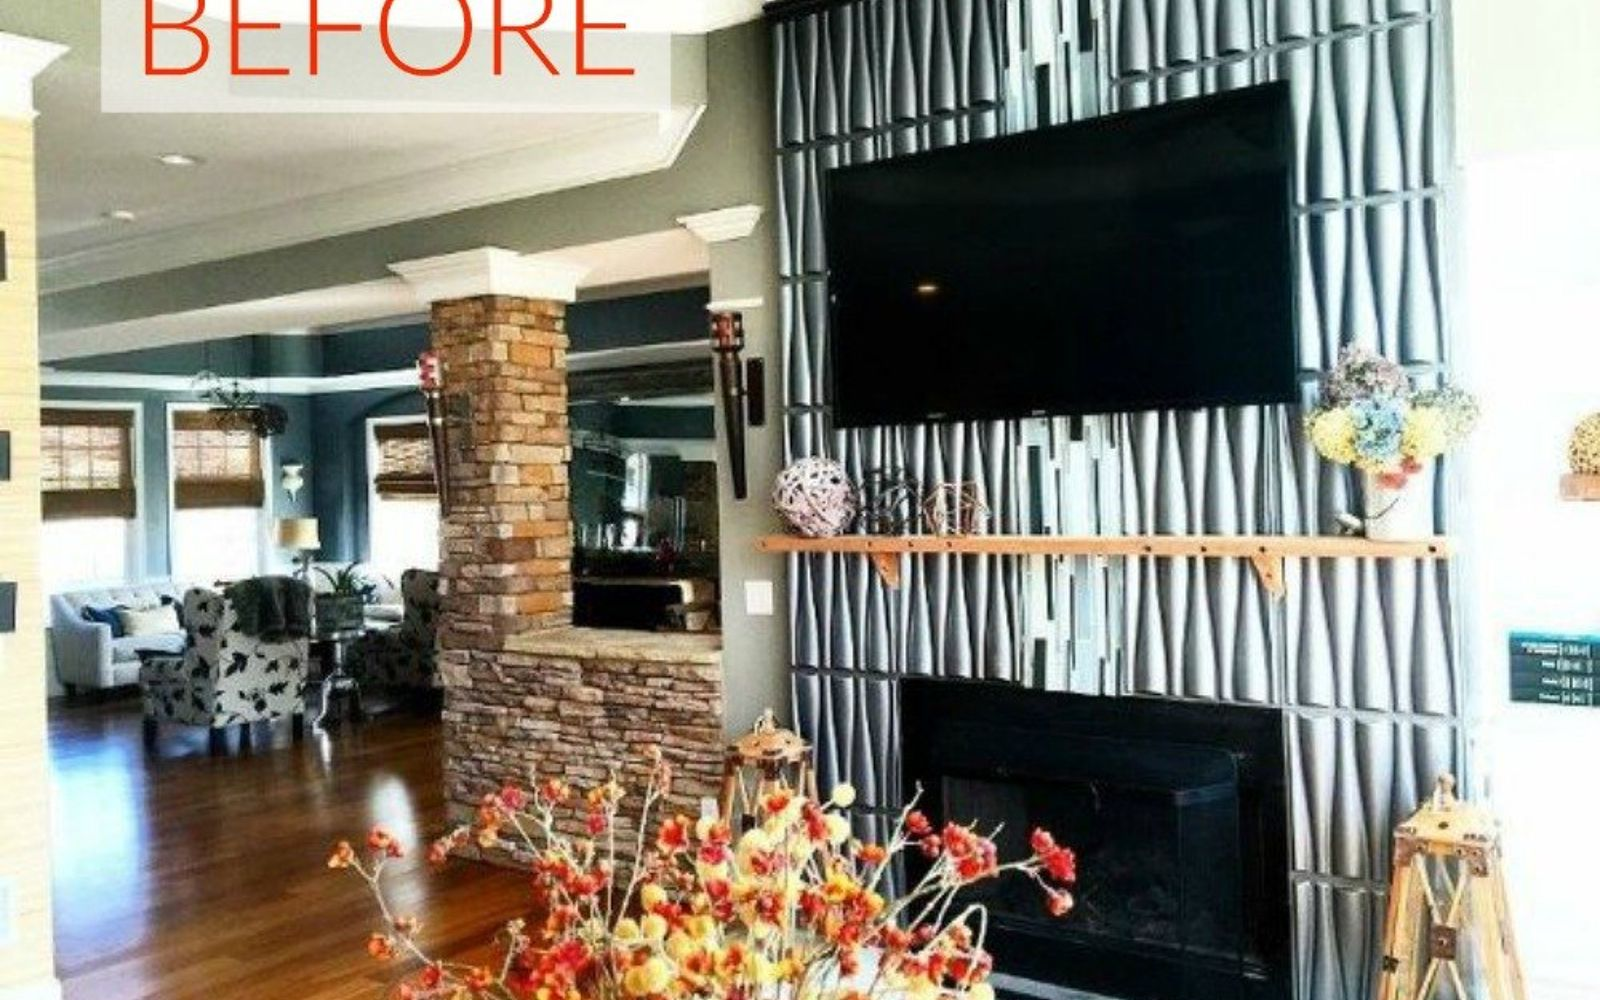 s 10 gorgeous ways to transform a brick fireplace without replacing it, concrete masonry, fireplaces mantels, The problem Too textured and modern